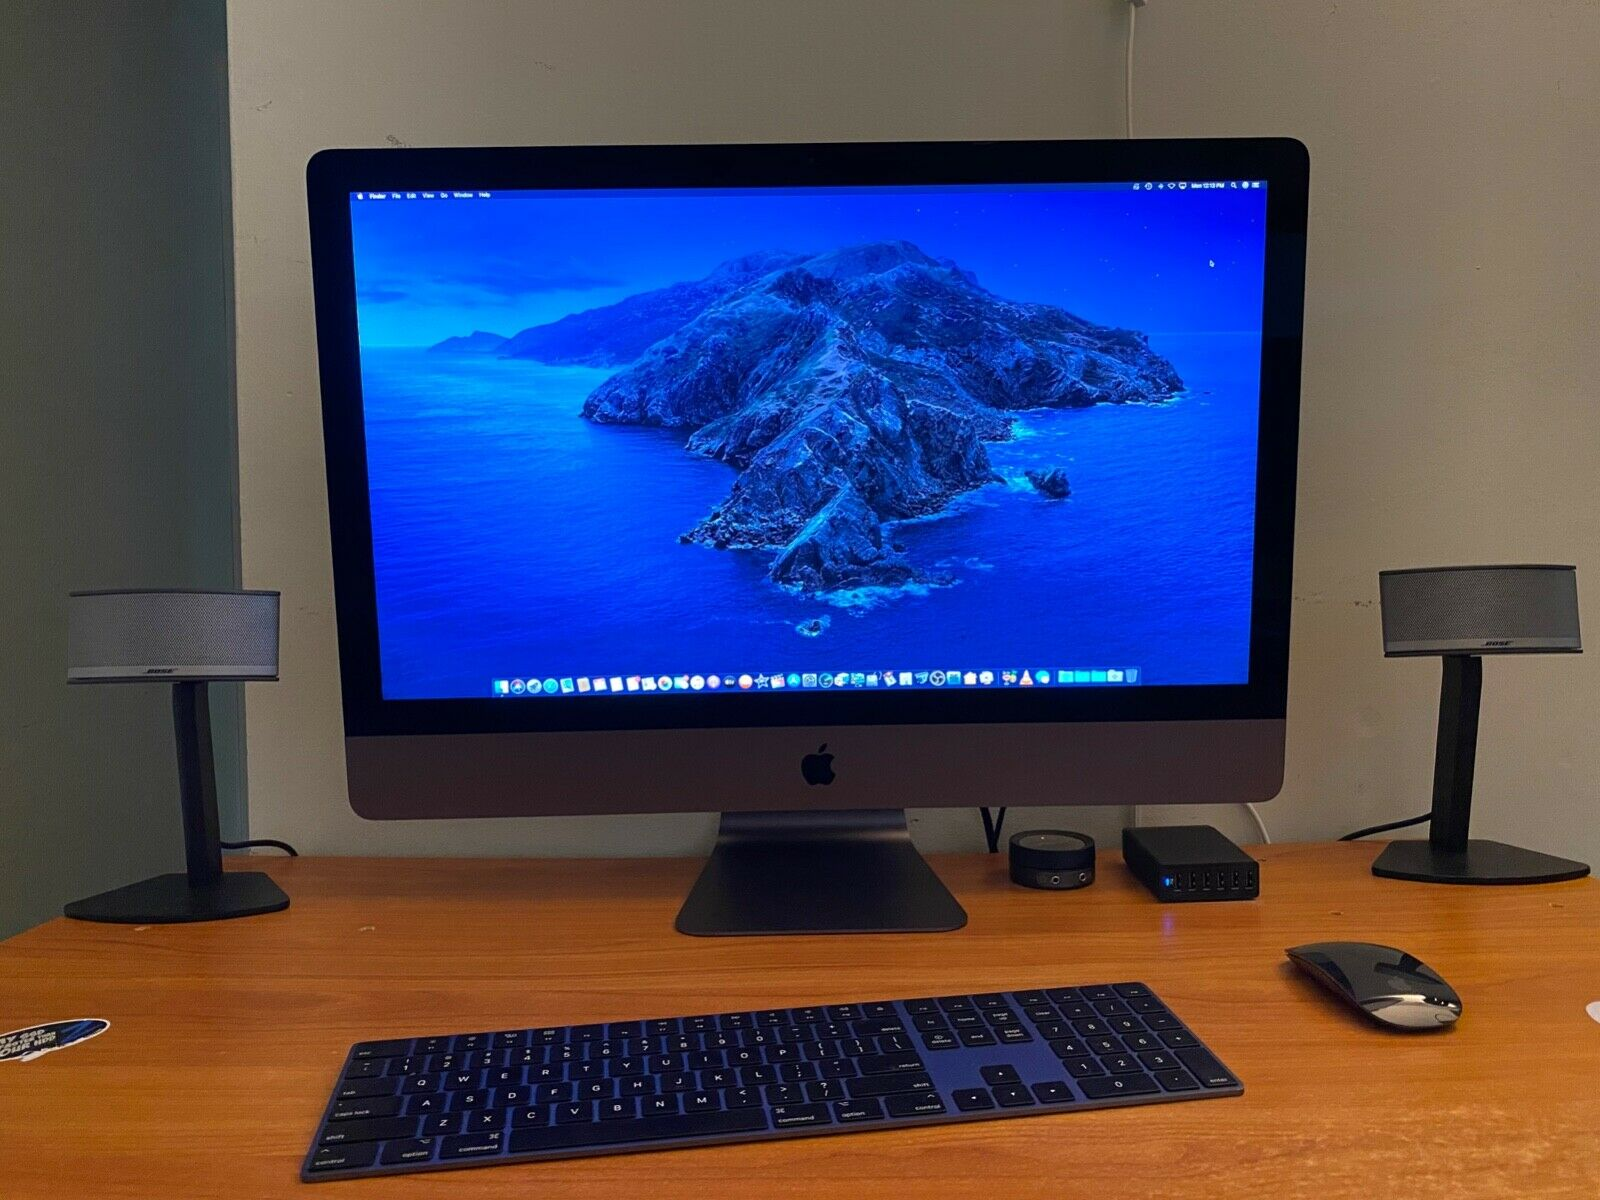 Apple iMac Pro 2017 1TB SSD, Vega 56, 3.2Ghz Intel Xeon A1862 Pristine Condition. Buy it now for 2950.00